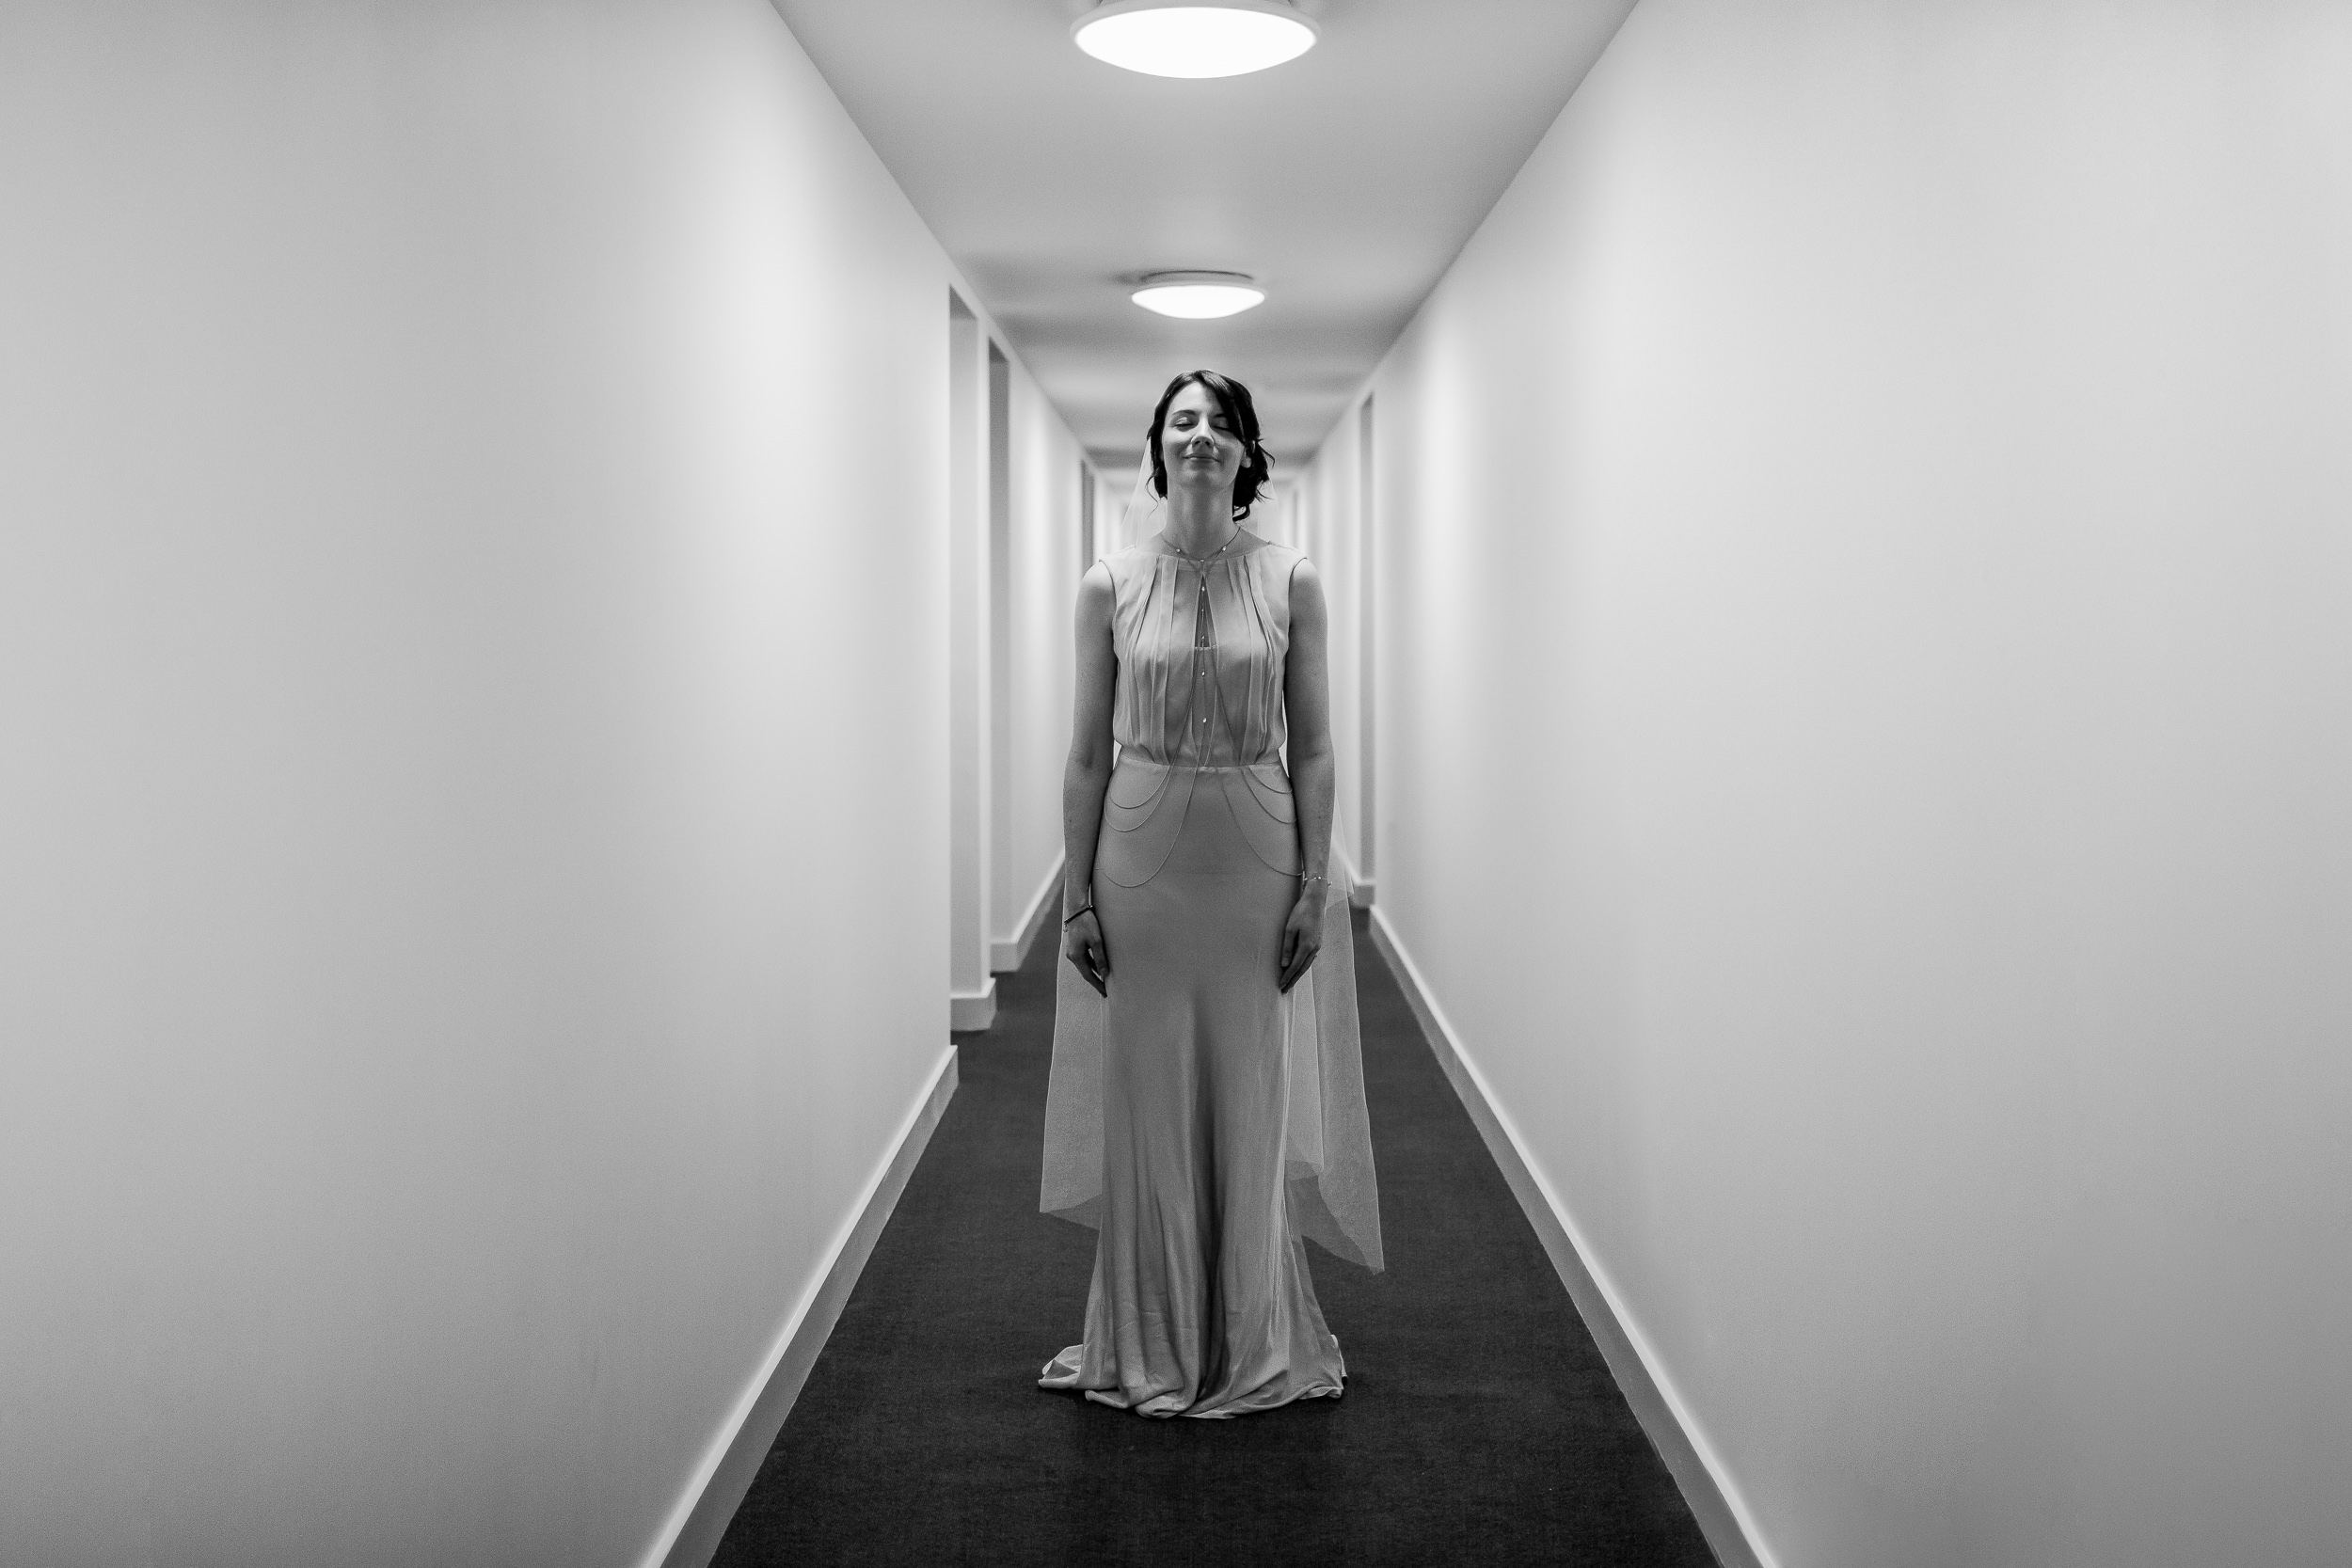 Bride in a corridor - Alternative bridal portrait - Birmingham wedding